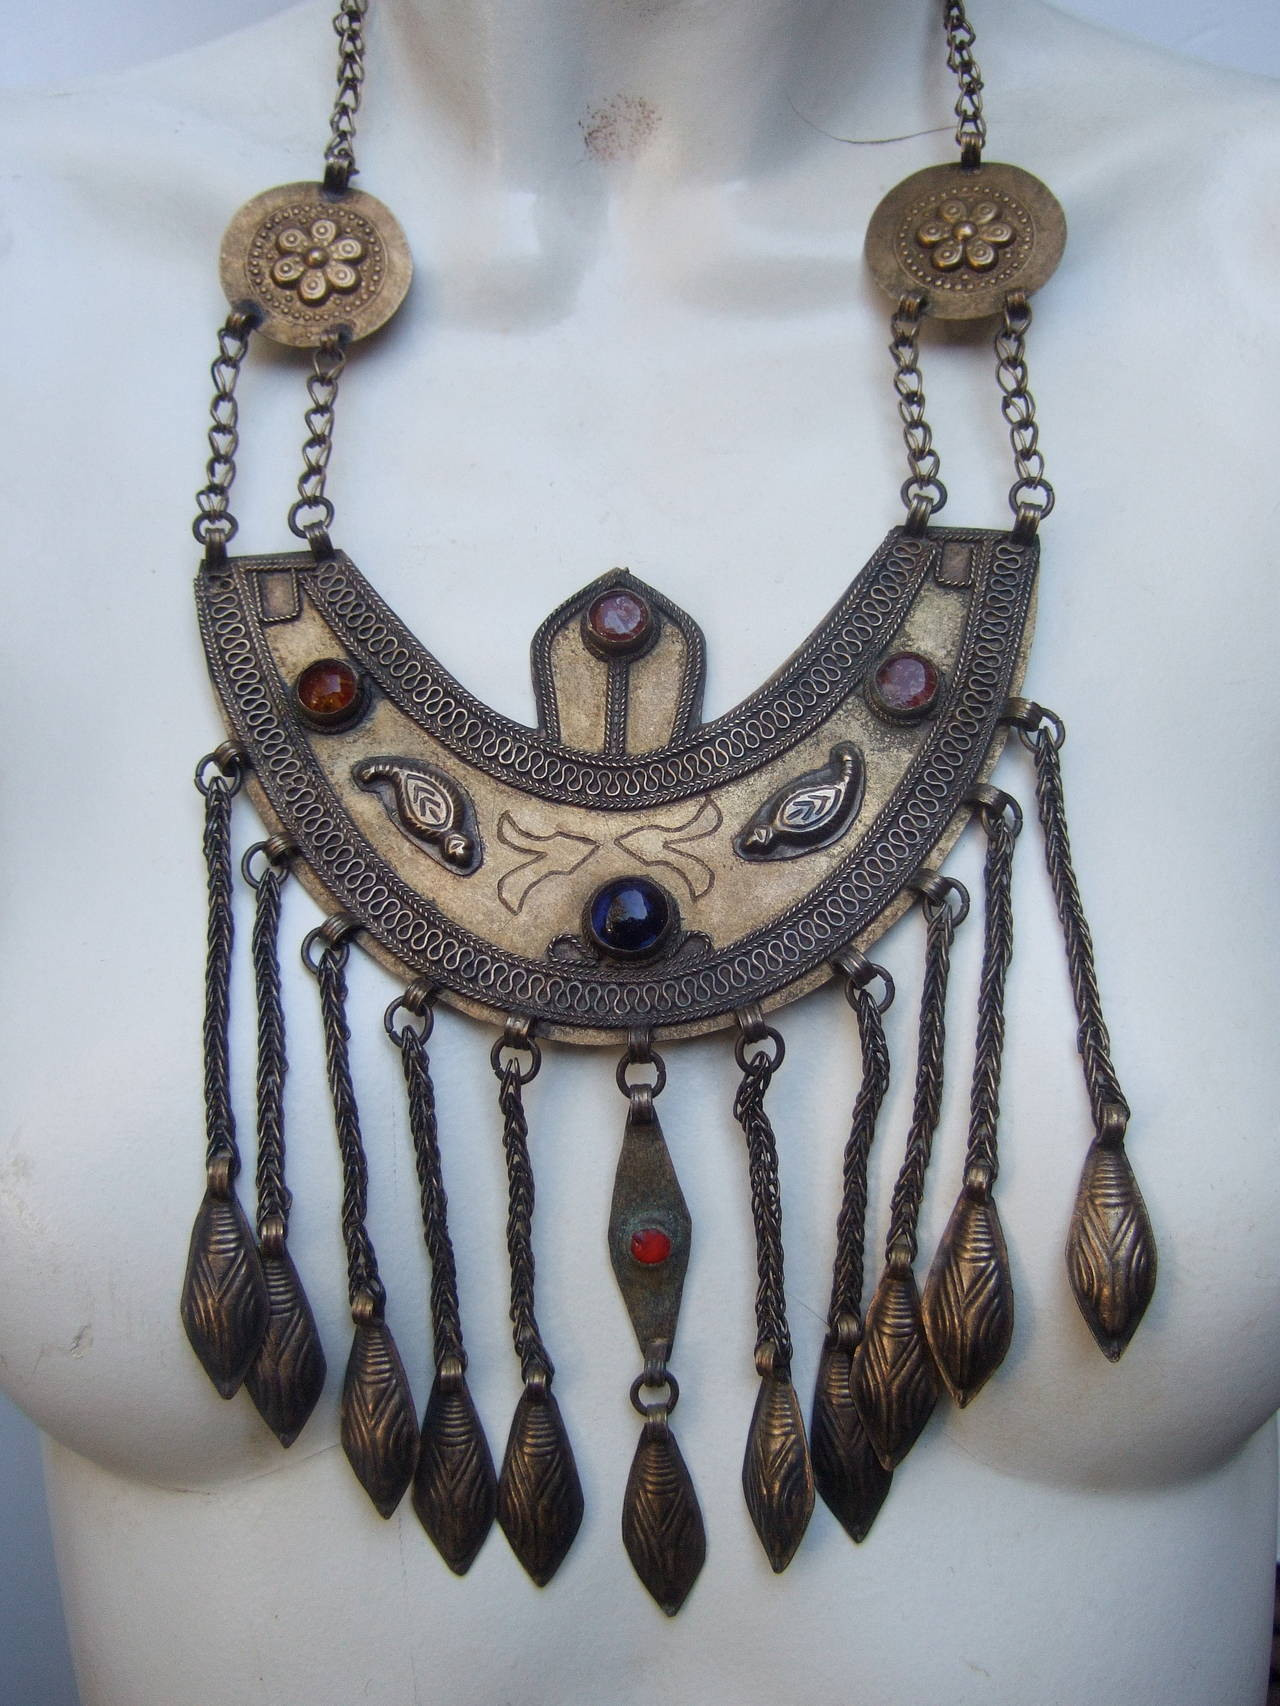 Massive Egyptian Revival Style Jeweled Serpent Ceremonial Necklace For Sale 1